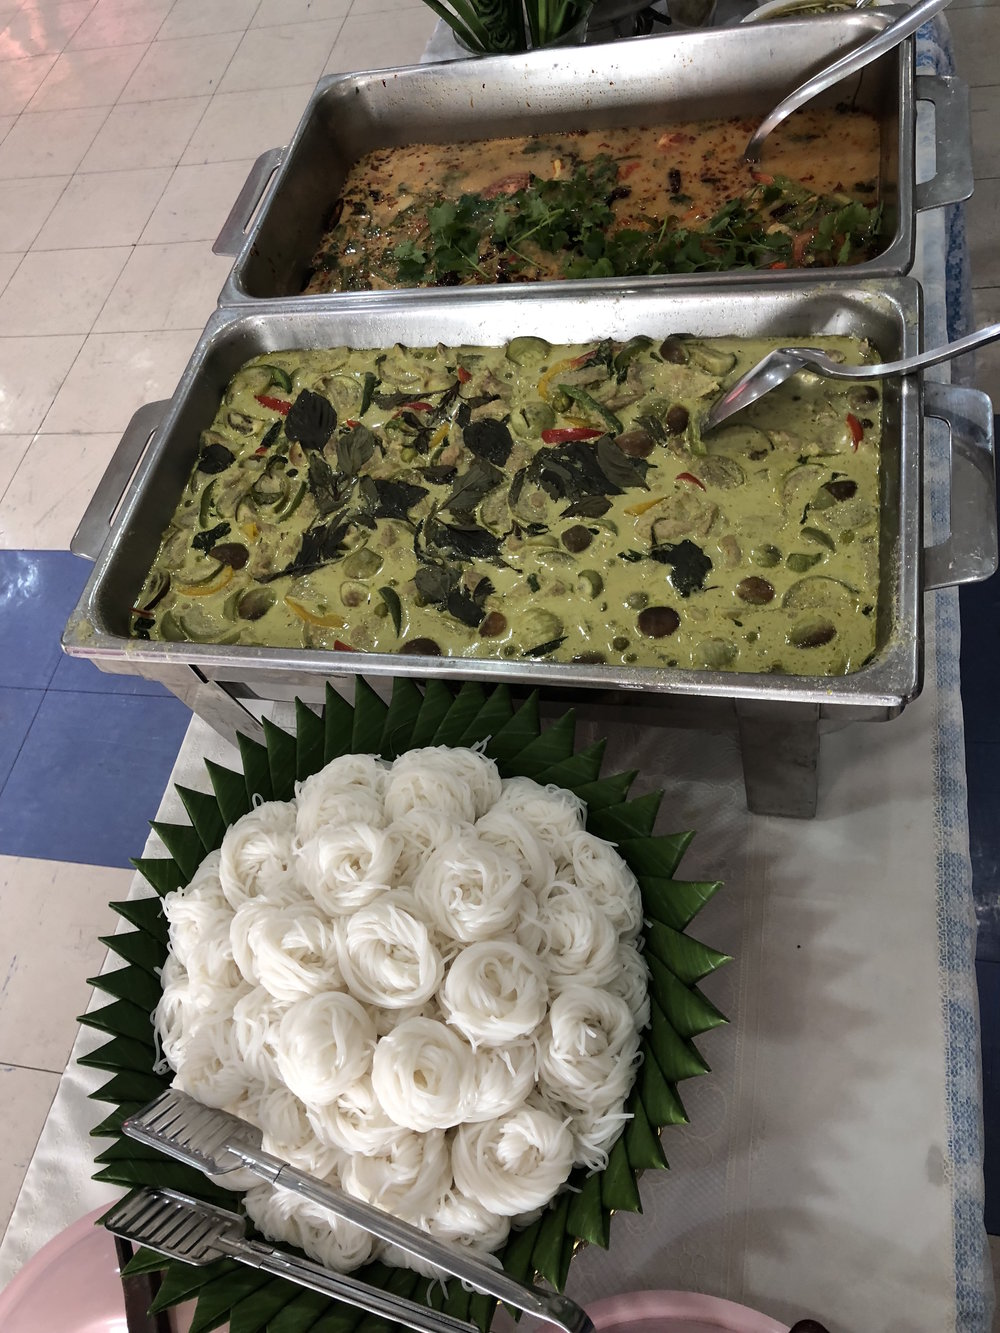 The school served us delicious green curry and tom yum for lunch!